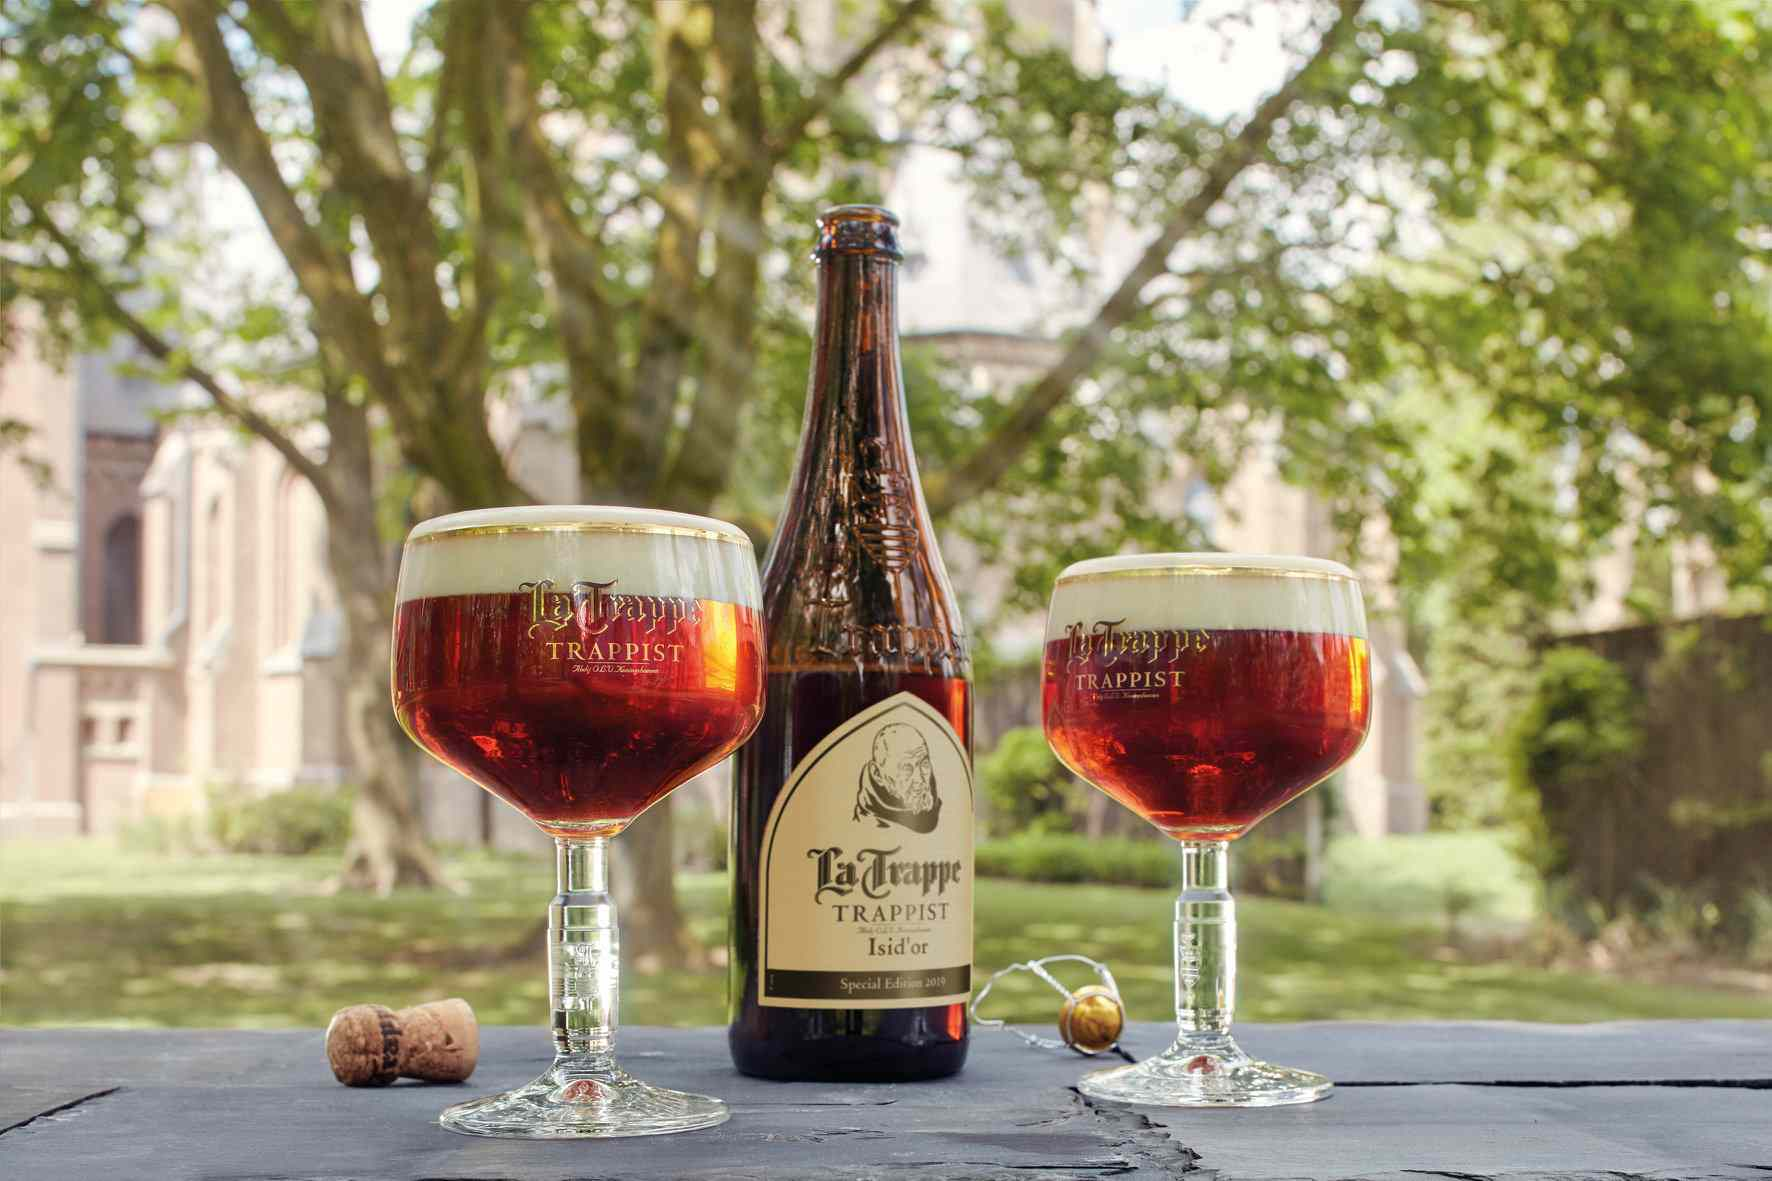 Two full goblets of beer and a bottle of La Trappe Trappis beer on a table with the abbey in the background